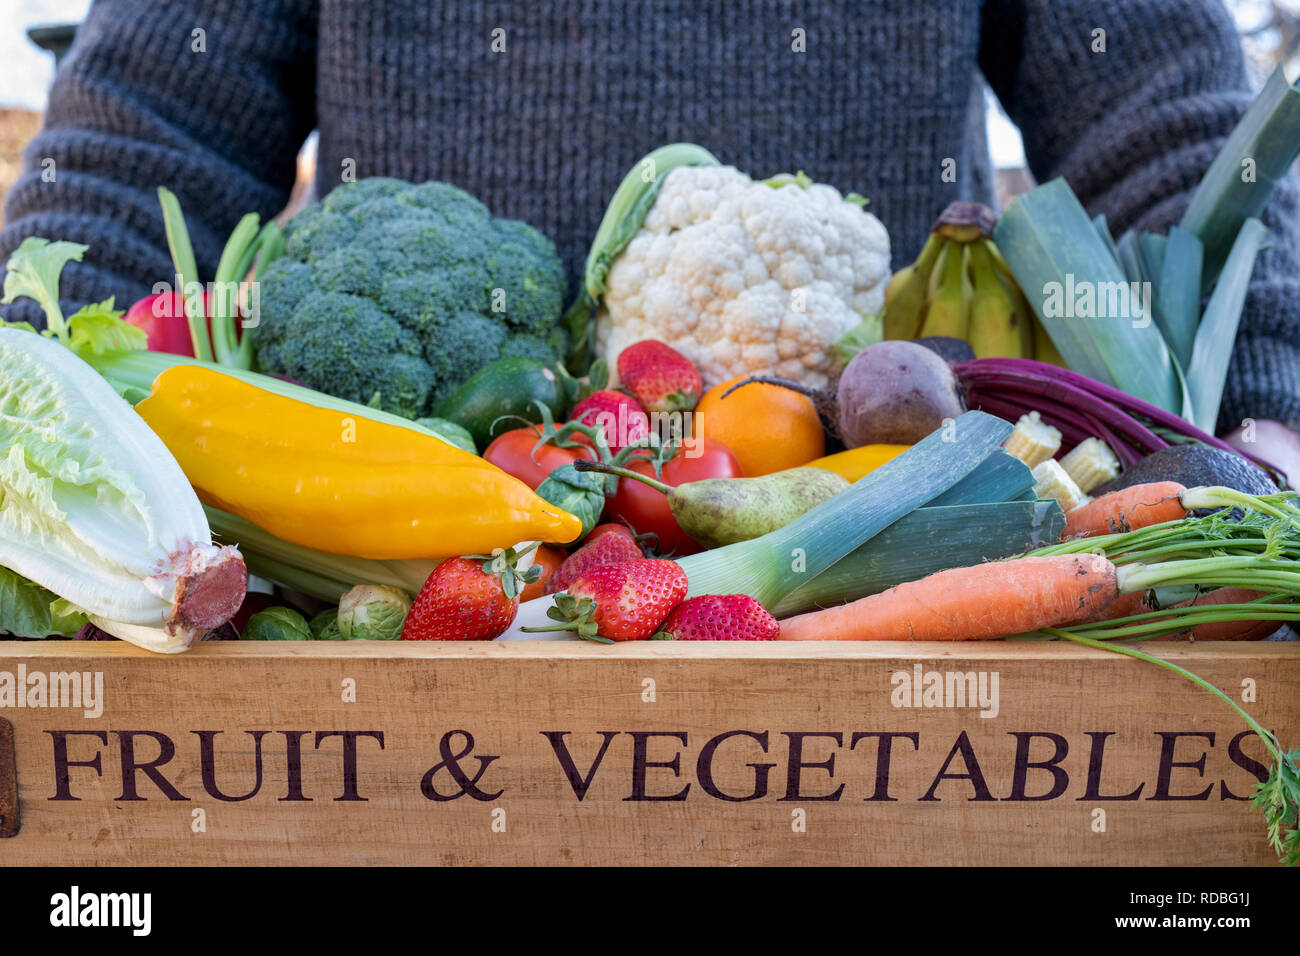 Man holding a wooden tray of fruit and vegetables. UK - Stock Image